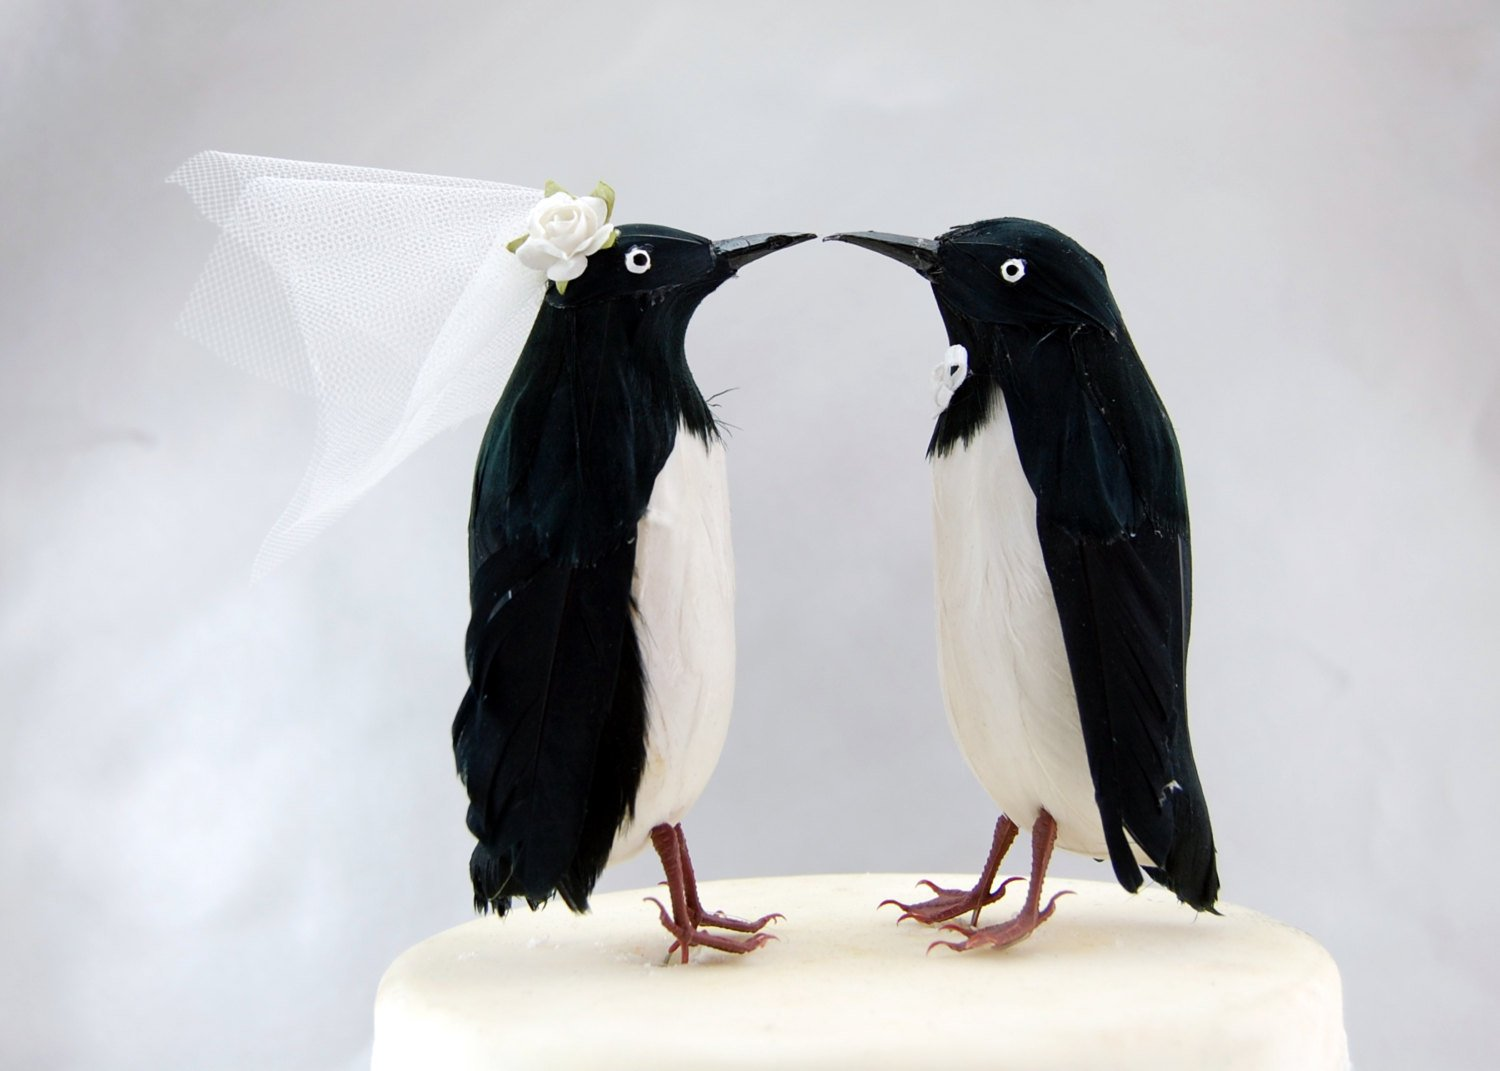 Amazon.com: Adelie Penguin Cake Topper: \